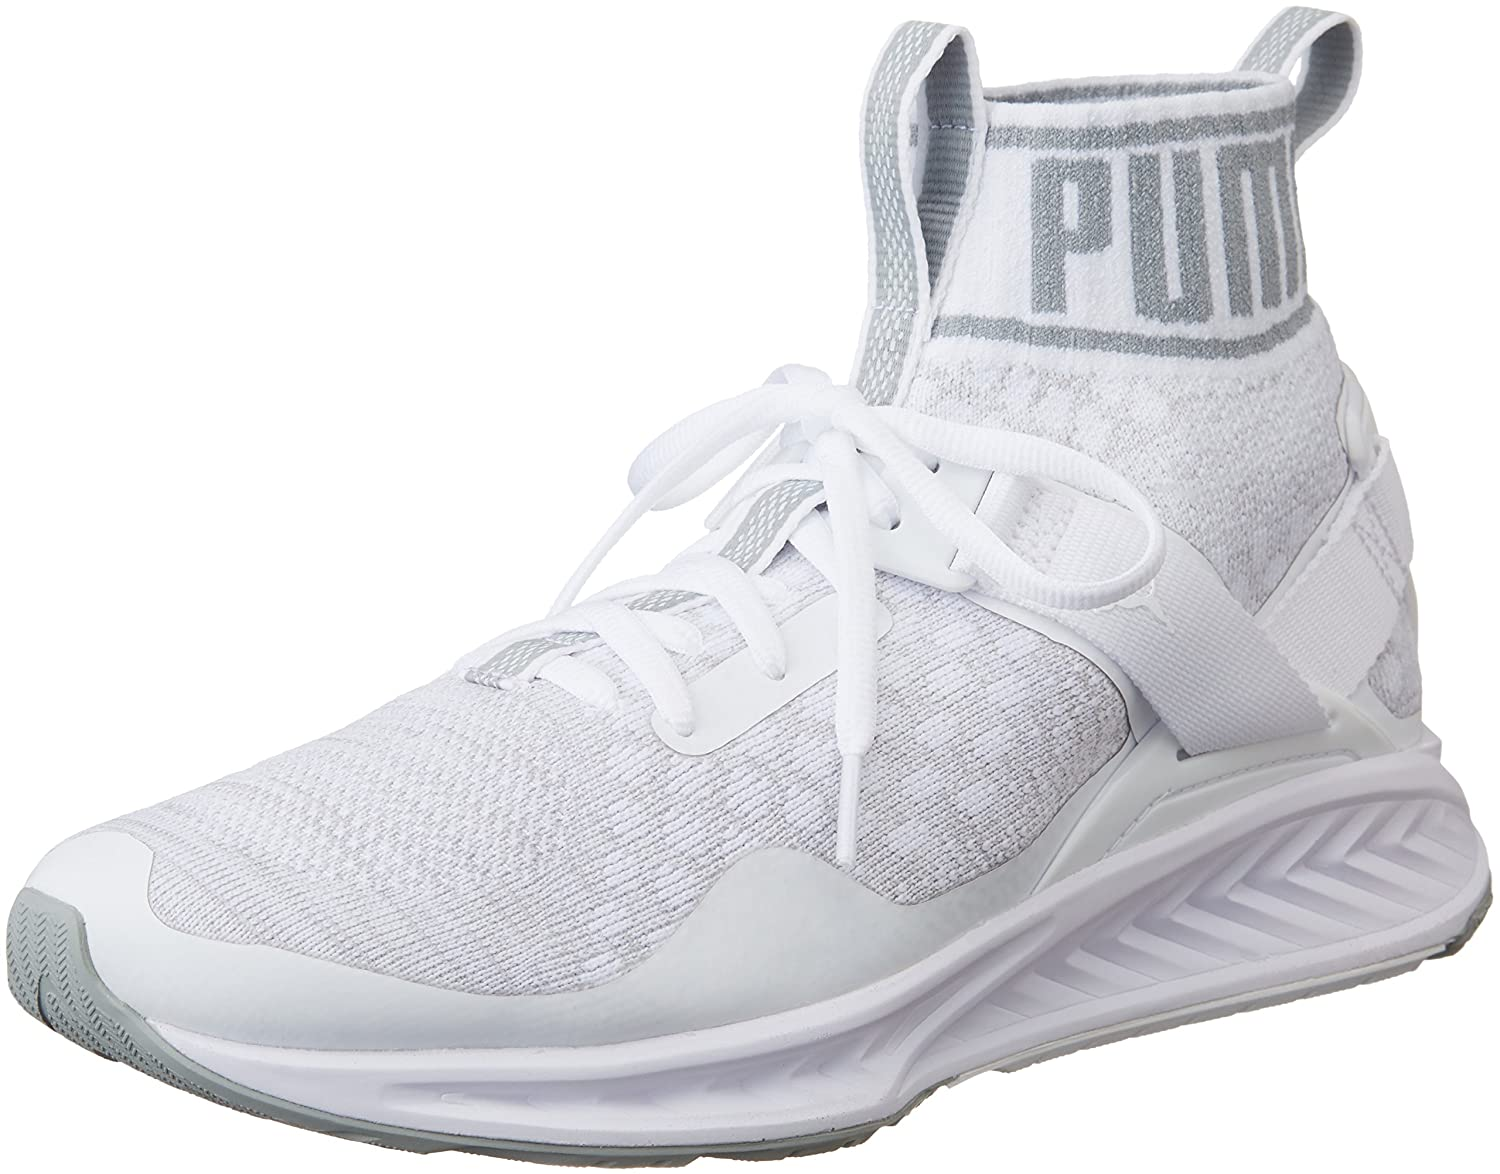 bfd144528526 Puma Men s Ignite Evoknit Running Shoes  Buy Online at Low Prices in India  - Amazon.in